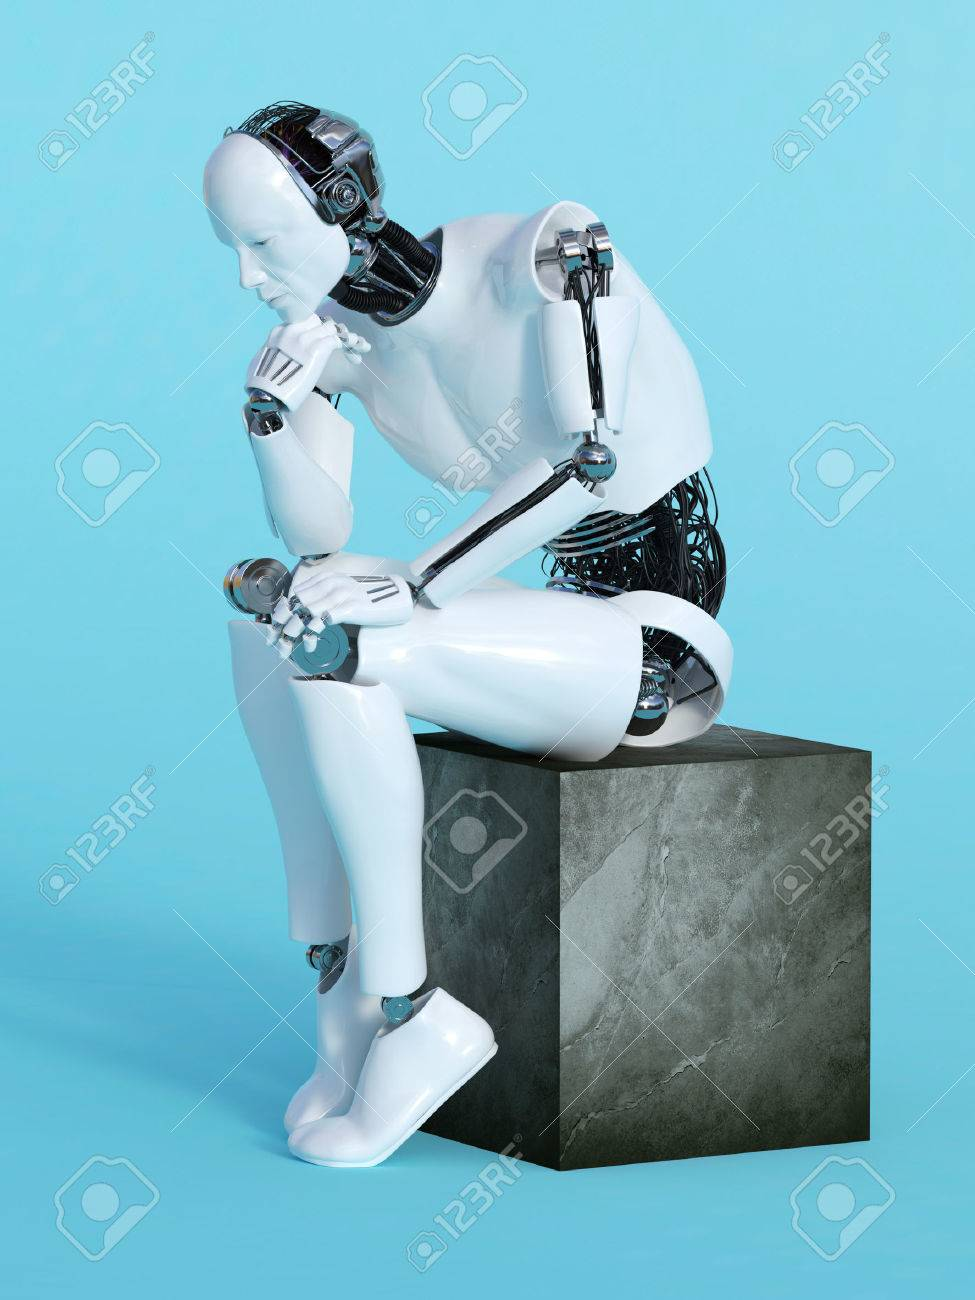 A male robot sitting and thinking, image 1. Blue background. Stock Photo - 55118304